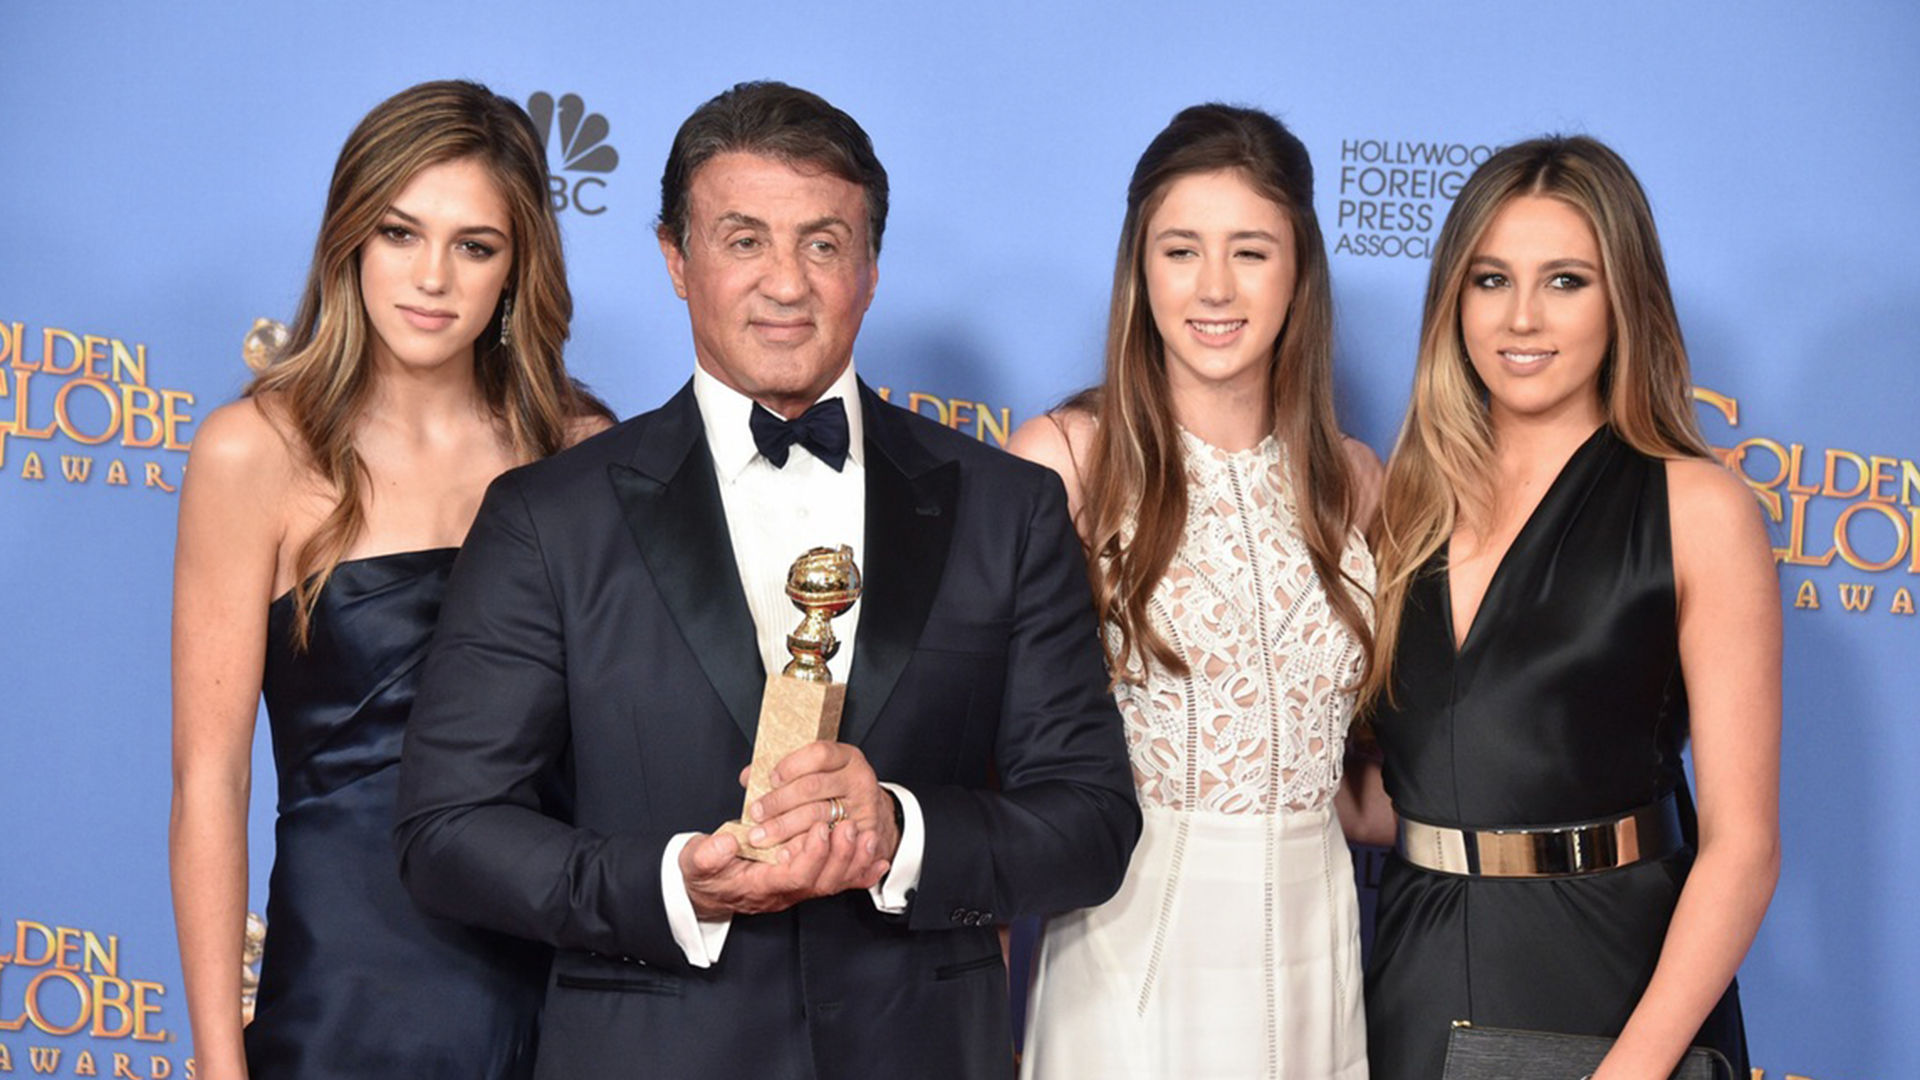 The Golden Globes:A Beauty Pageant? - A Diversity Check on the 2017 Golden Globes, in Data